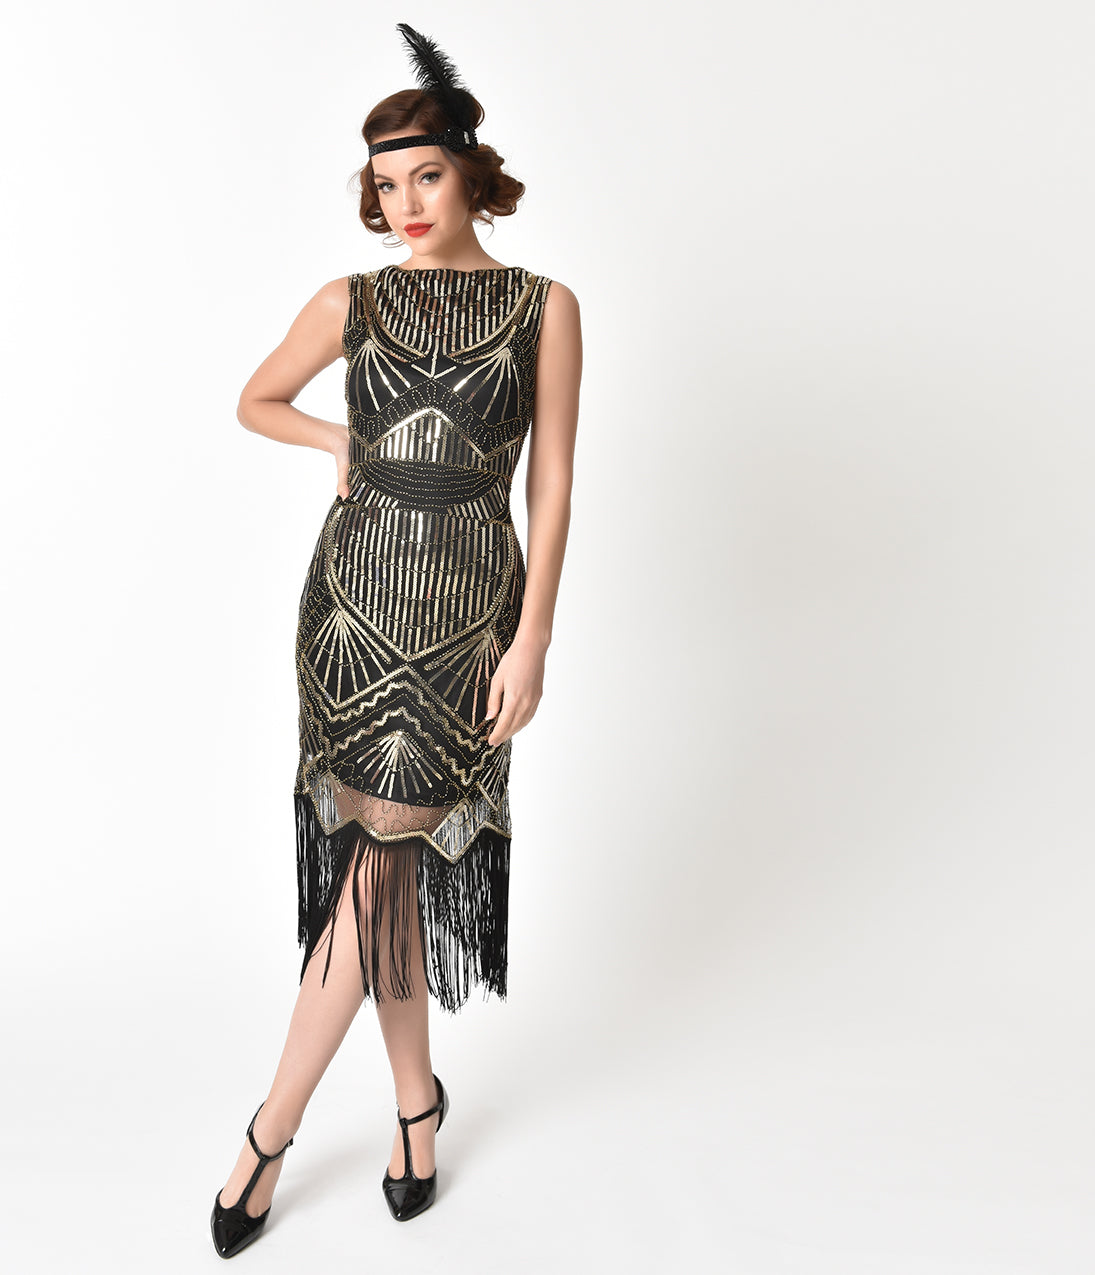 Roaring 20s Costumes- Flapper Costumes, Gangster Costumes Unique Vintage Black  Gold Sequin Therese Long Flapper Dress $98.00 AT vintagedancer.com